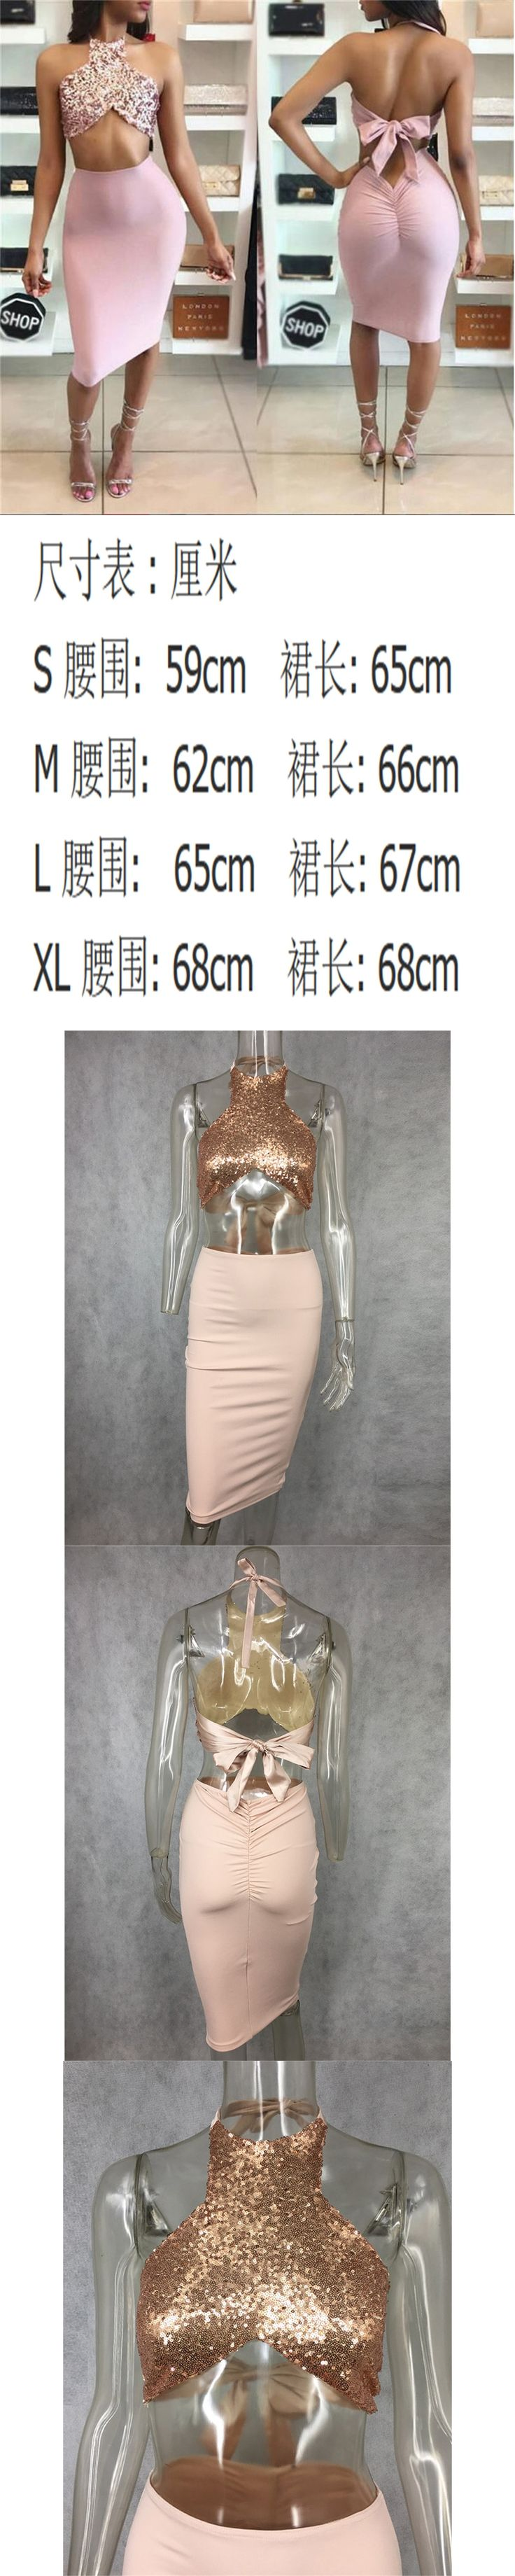 Women Sexy  perspective Rose Gold strap hang Milk silk + sequins backless  V Neck Sleeveless Slim  Two-piece Skirt  Set 	W2164